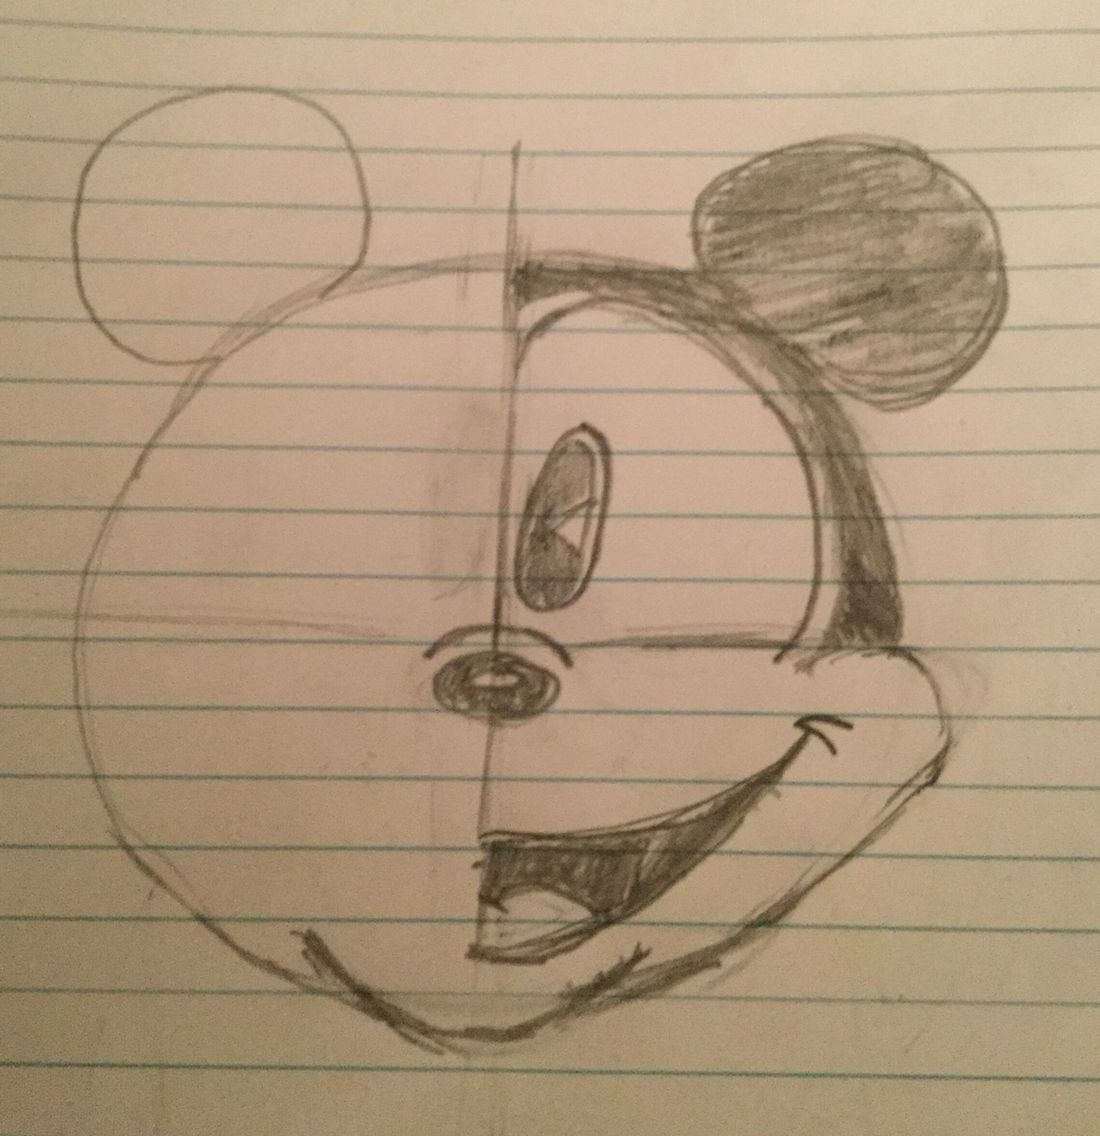 Half of Mickey Mouse